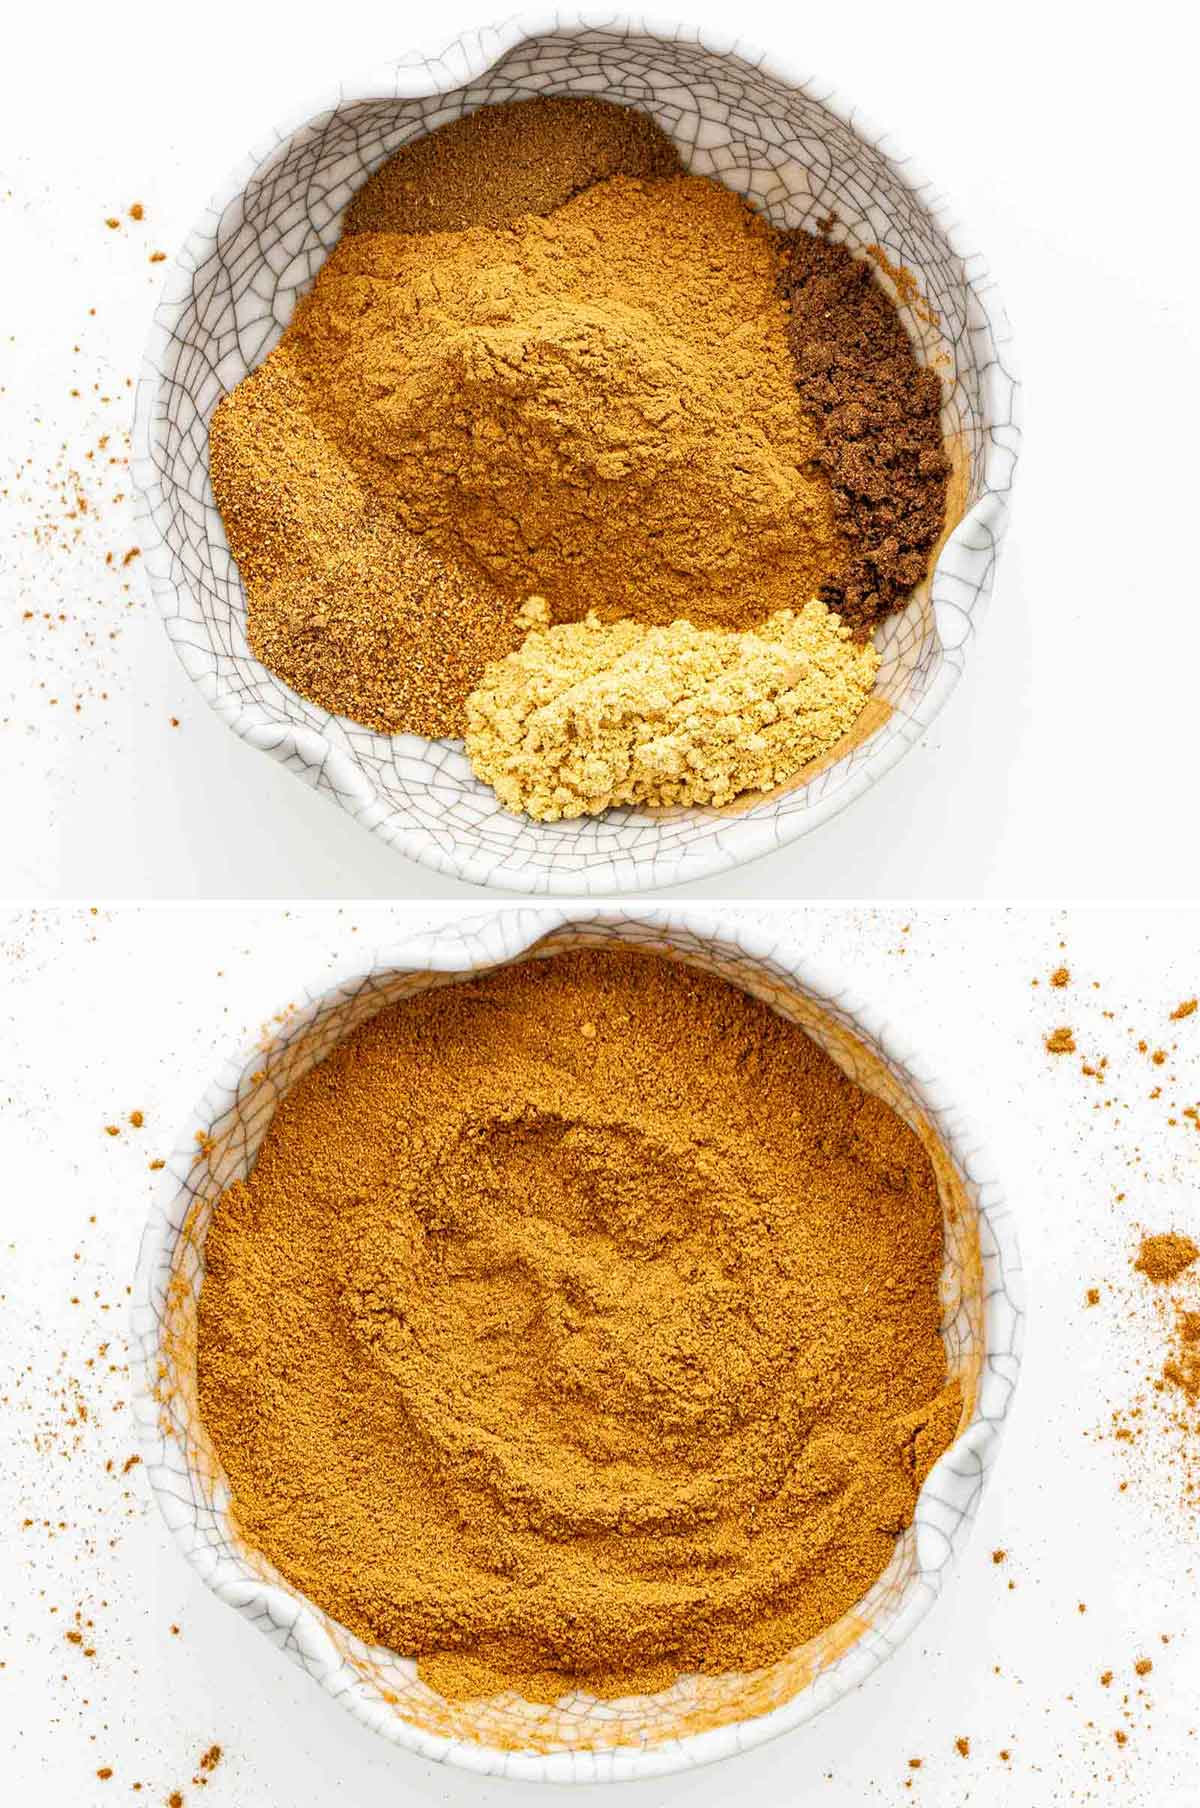 process shots showing how to make pumpkin pie spice.